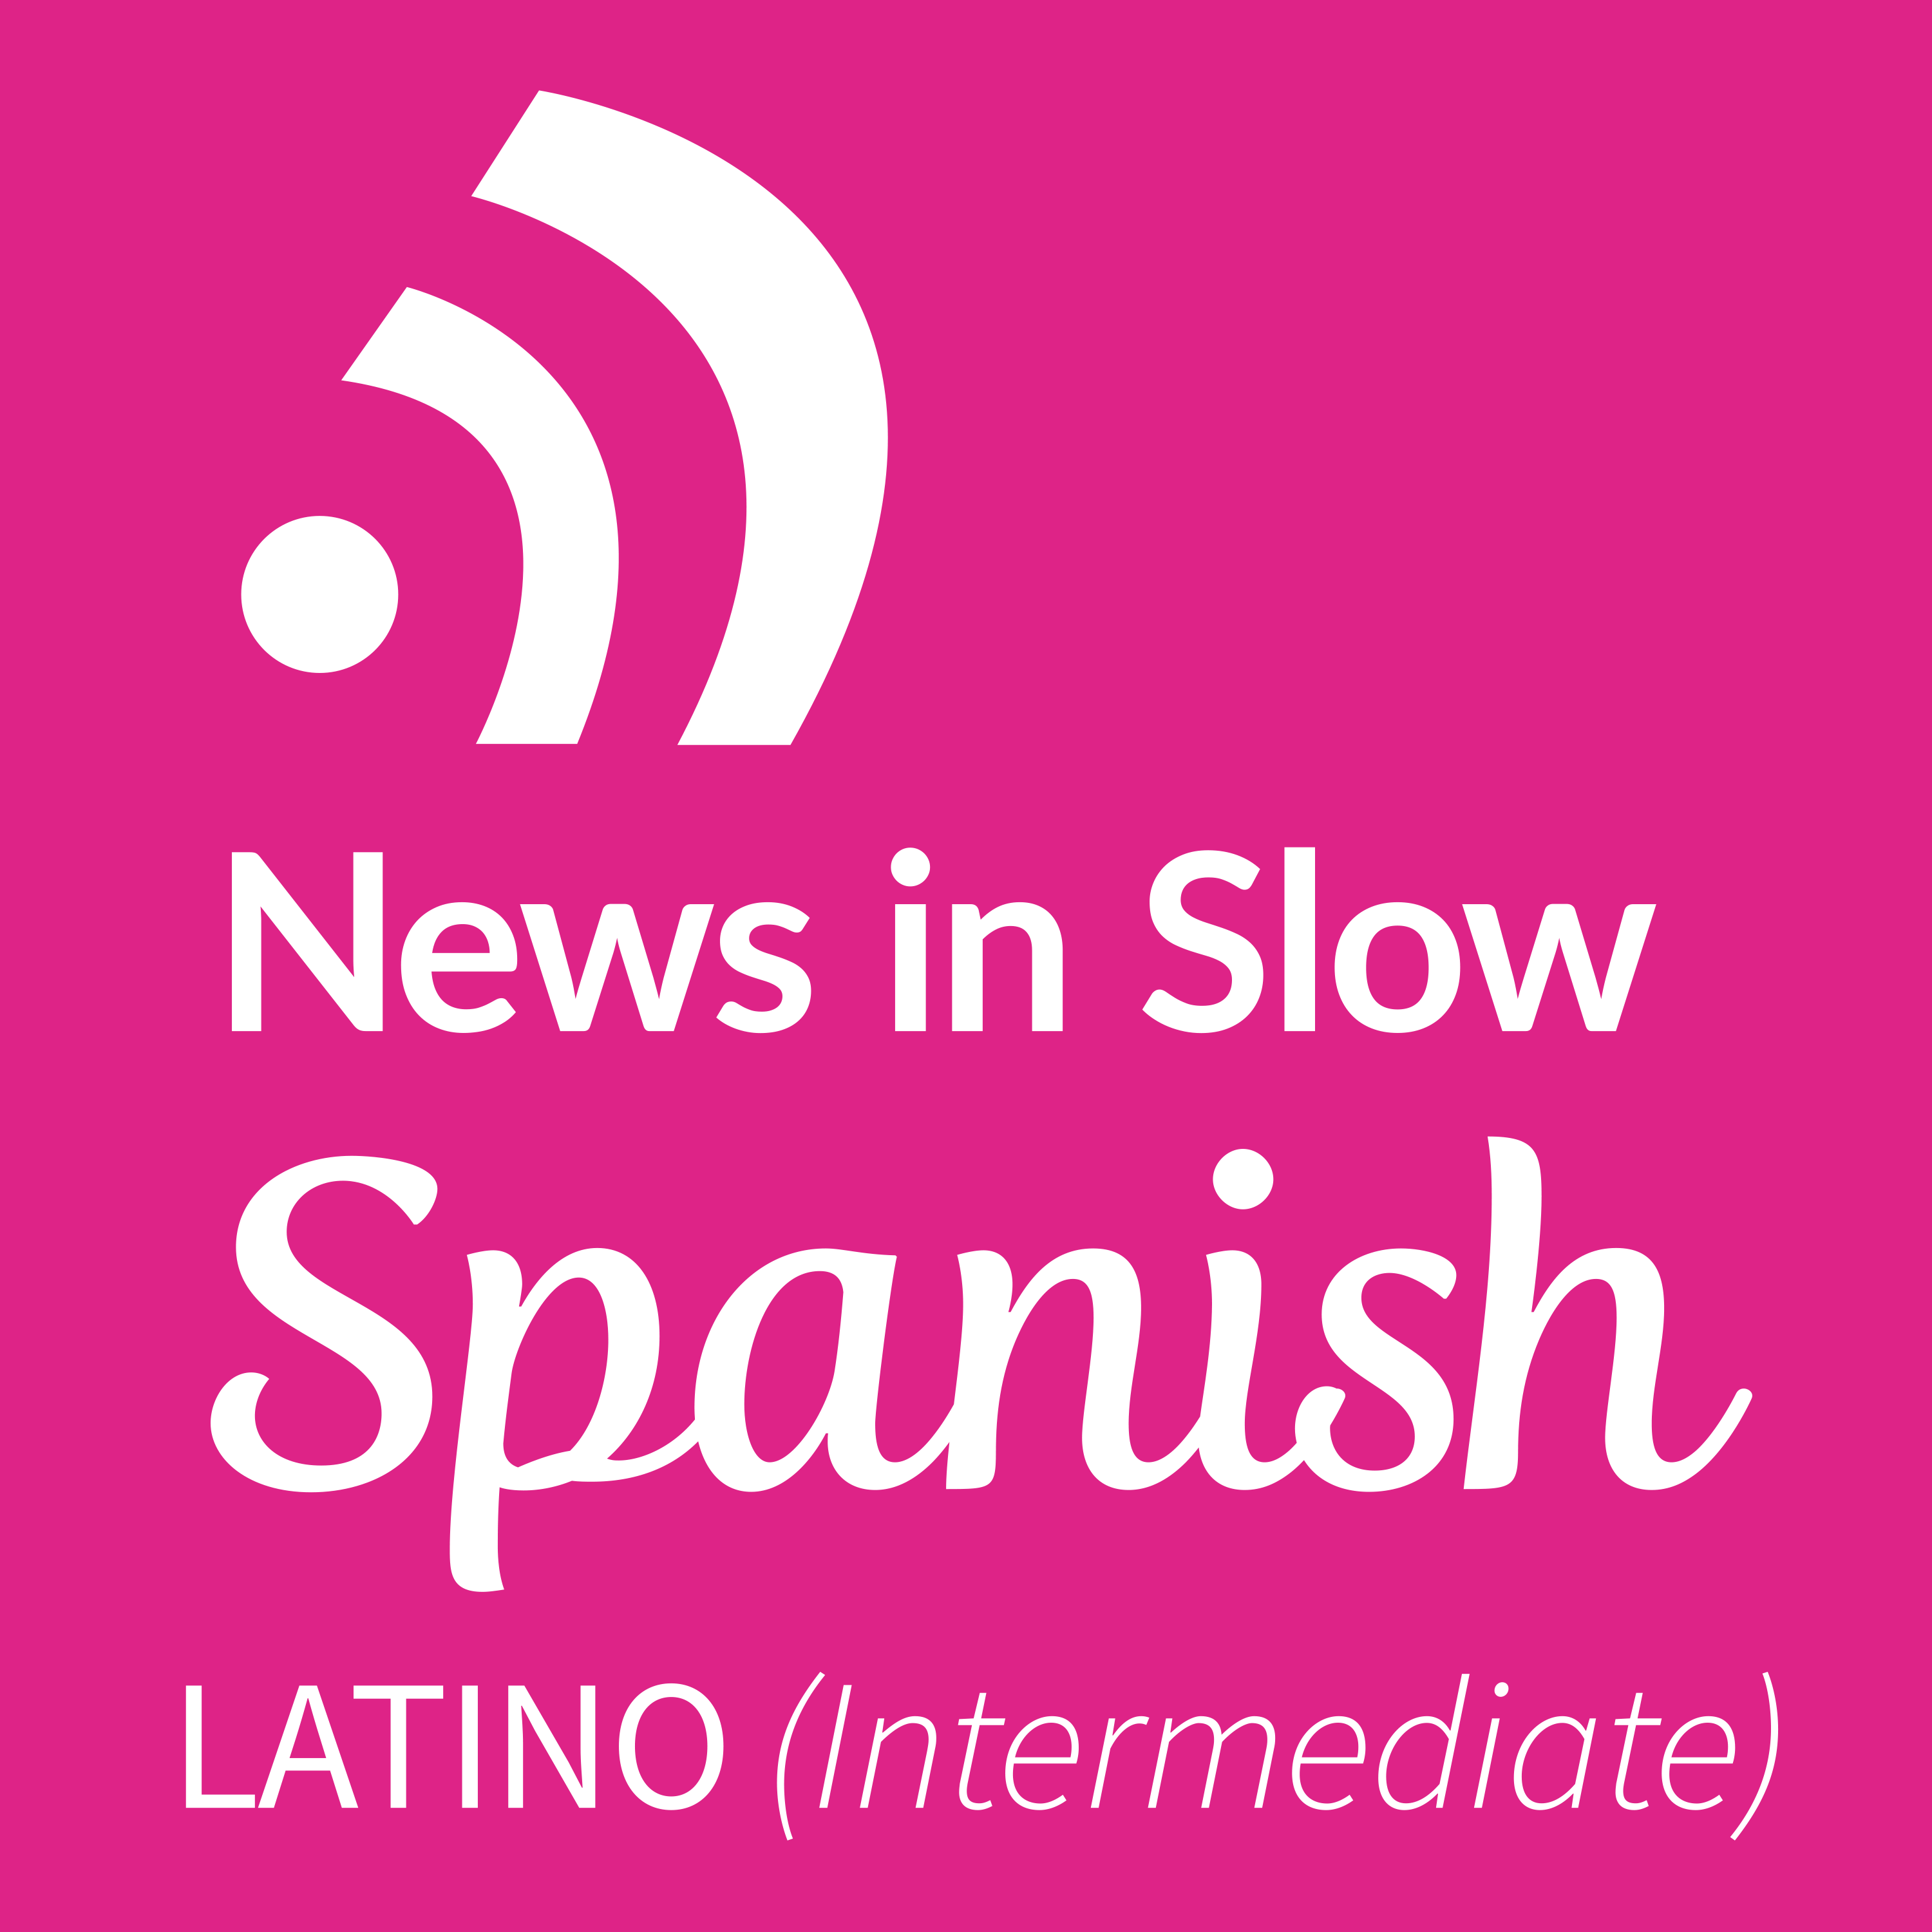 News in Slow Spanish Latino - # 174 - Language learning through current events